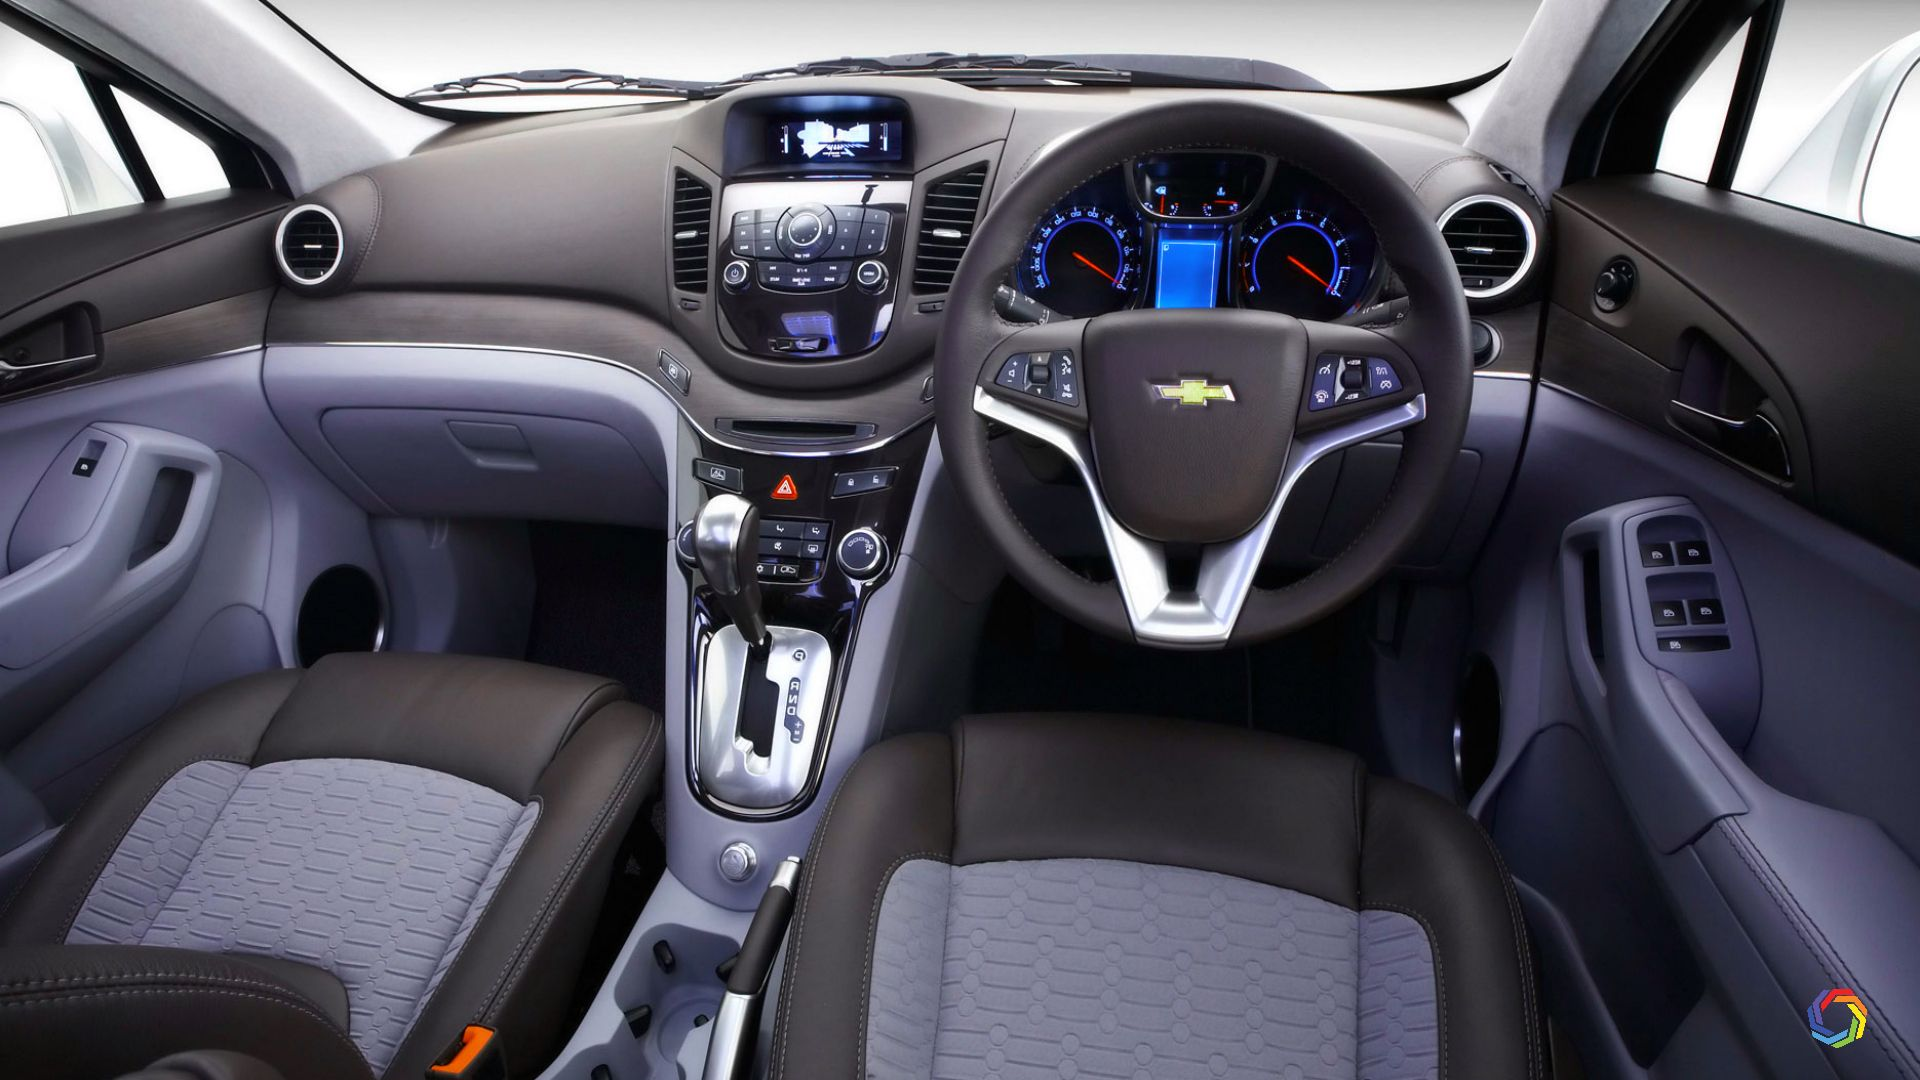 Free Chevrolet Orlando Full Hd Wallpaper Chevrolet Orlando Full